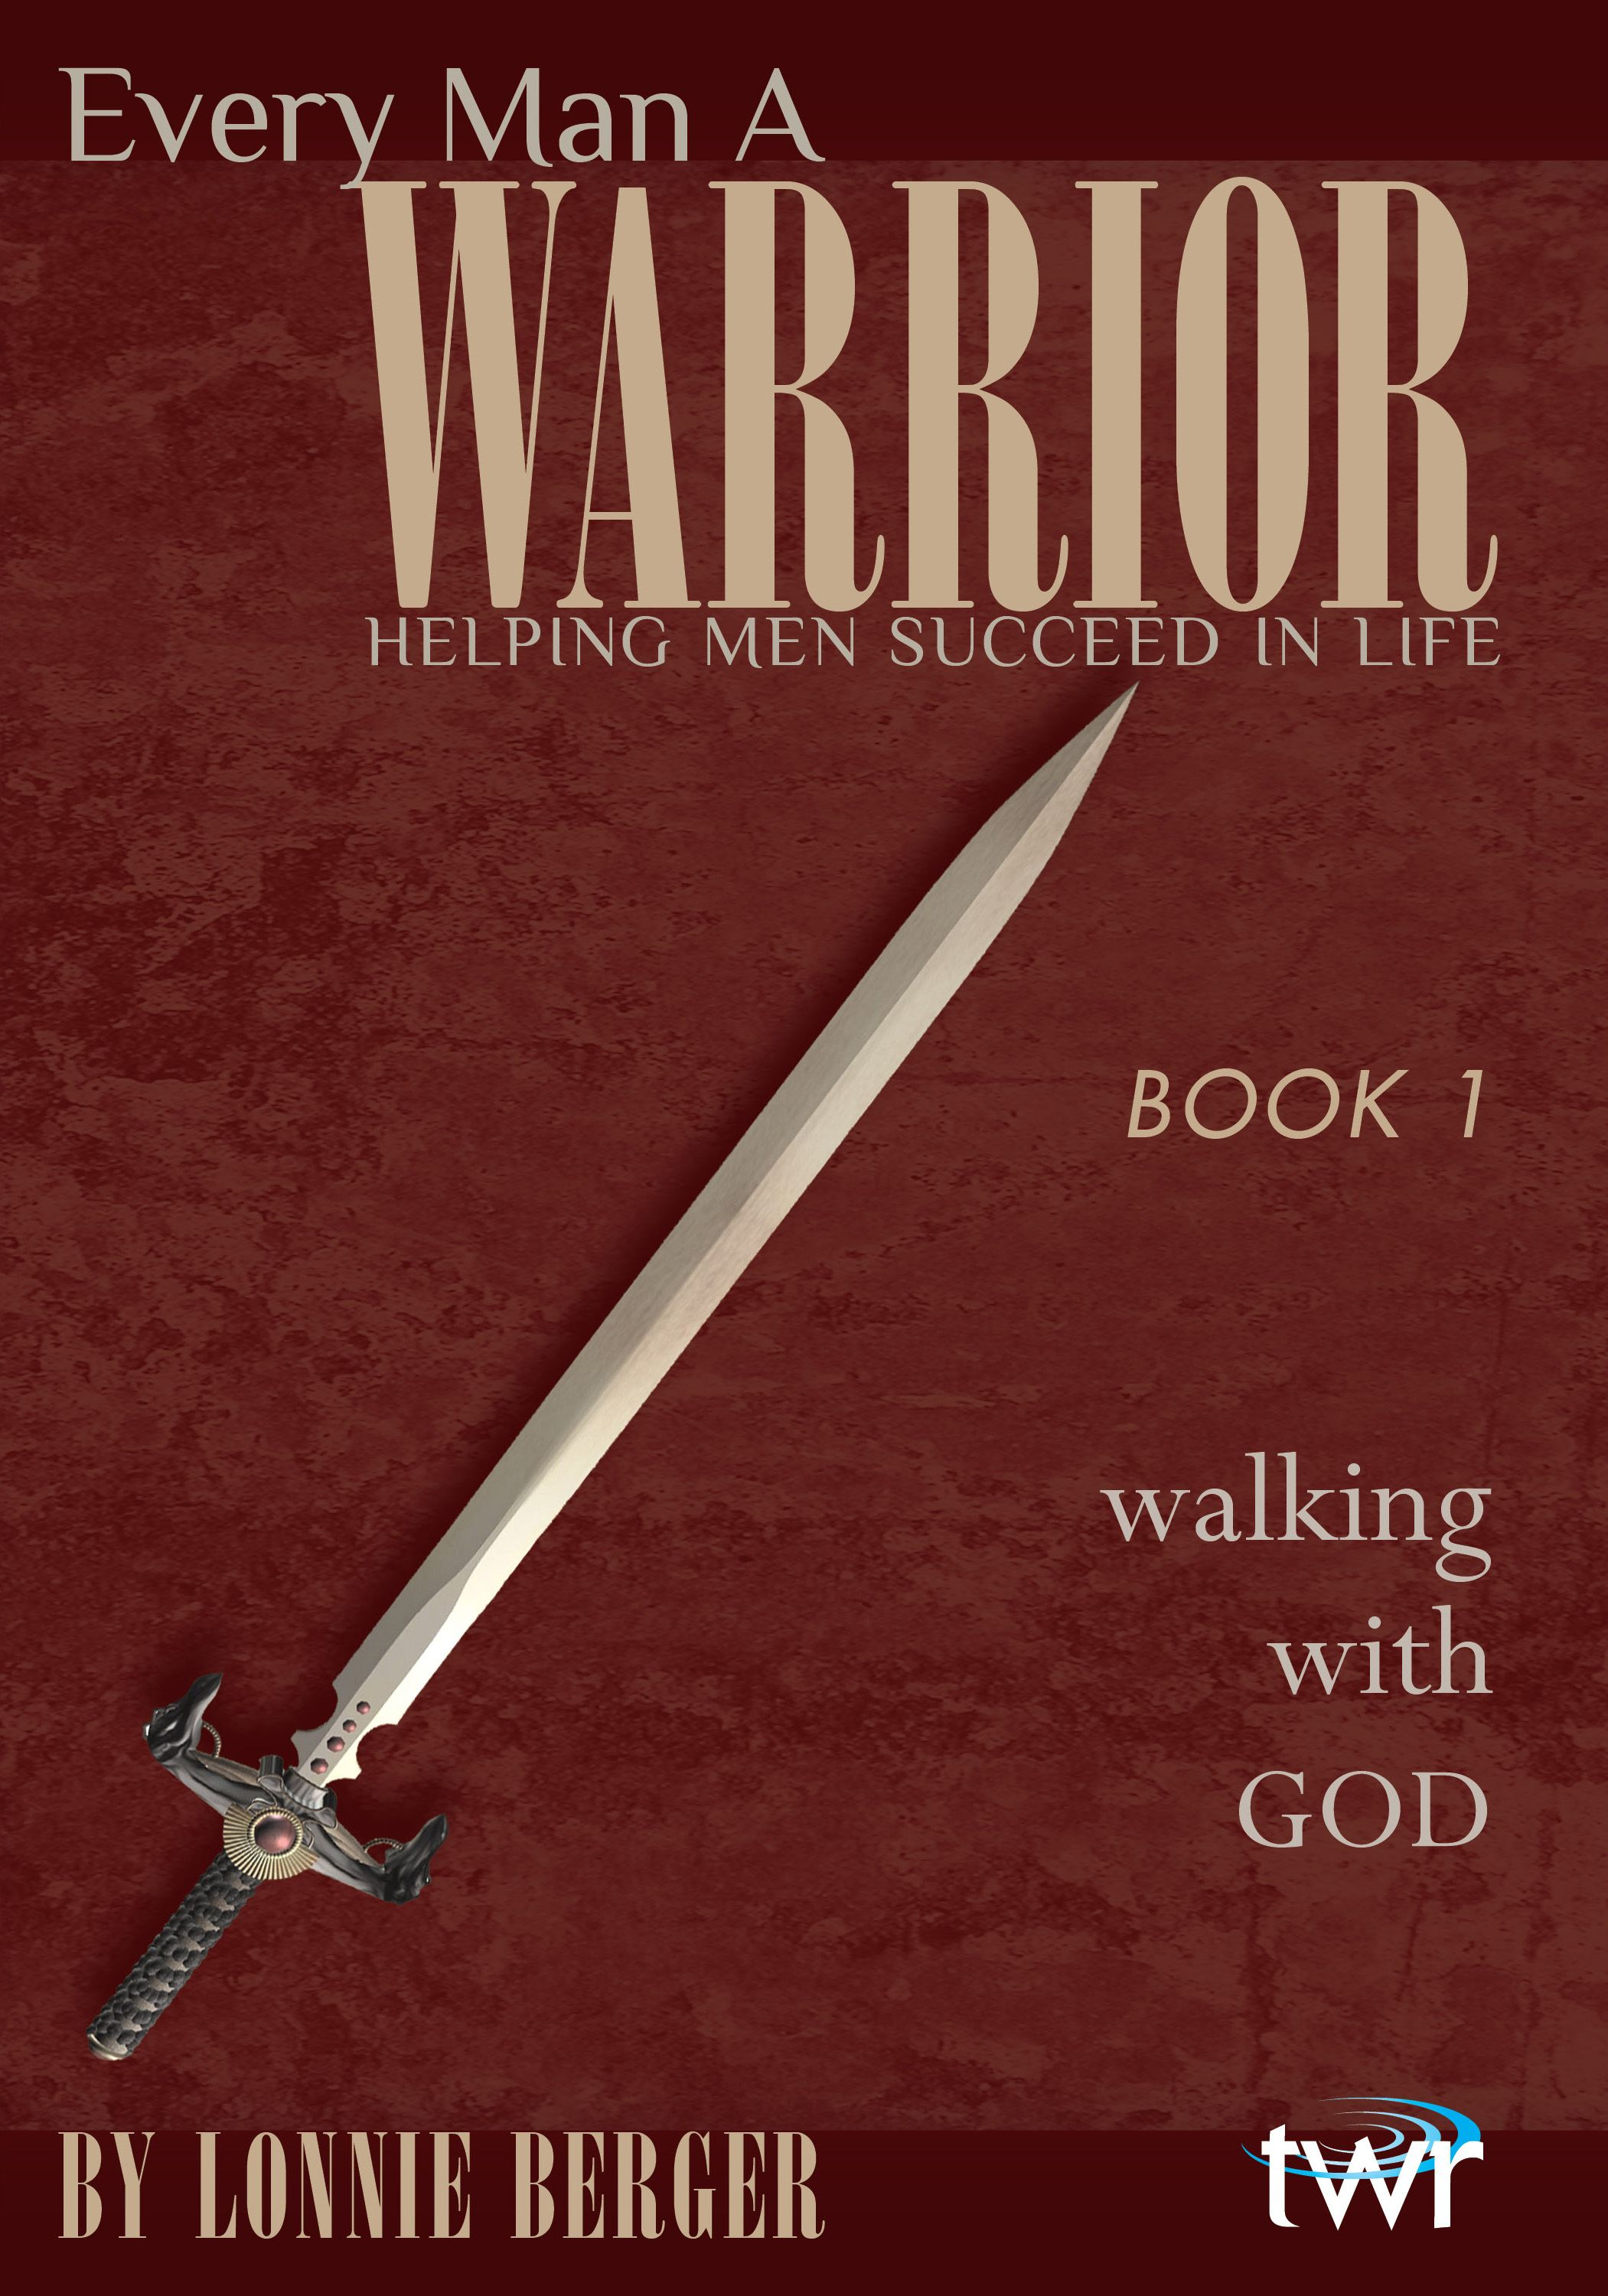 Book 1: Walking with God